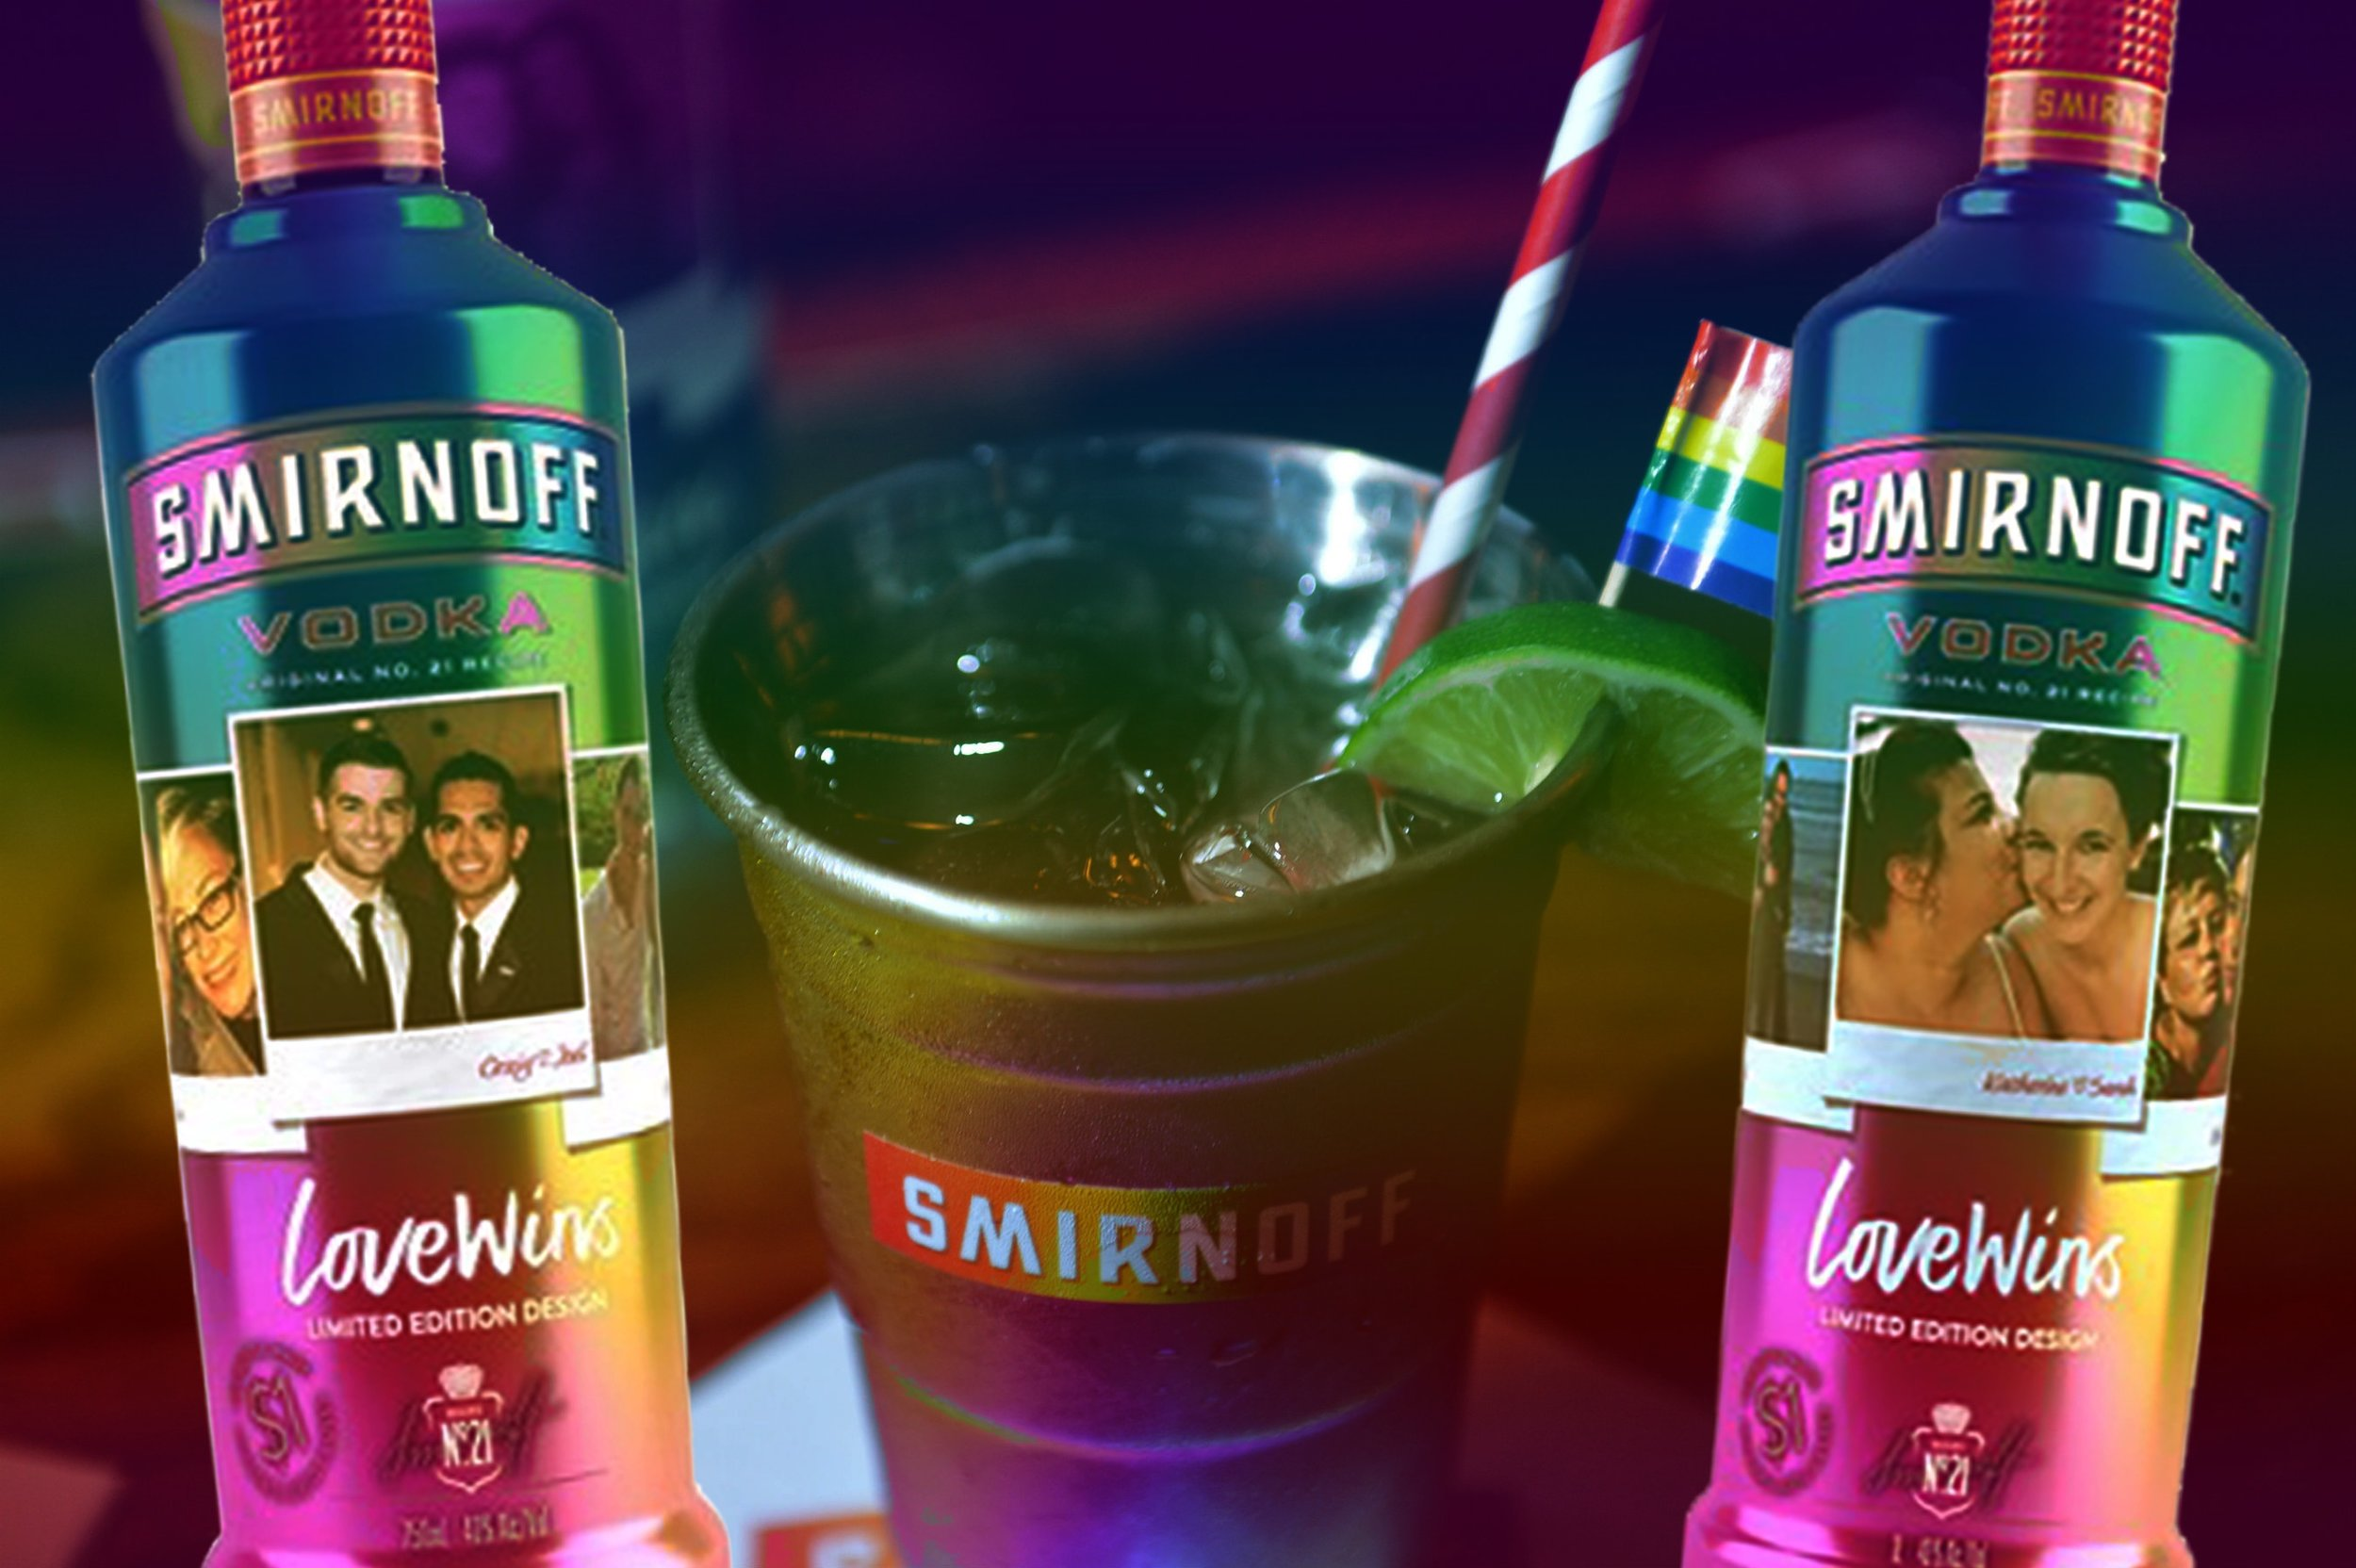 """SMIRNOFF LOVE WINS - """"Donates $1 for every """"Love Wins"""" bottle made to Human Rights Campaign for a minimum of one million dollars over 3 years."""" READ MORE🌈 DRINK AT TROUPE429 ✅"""